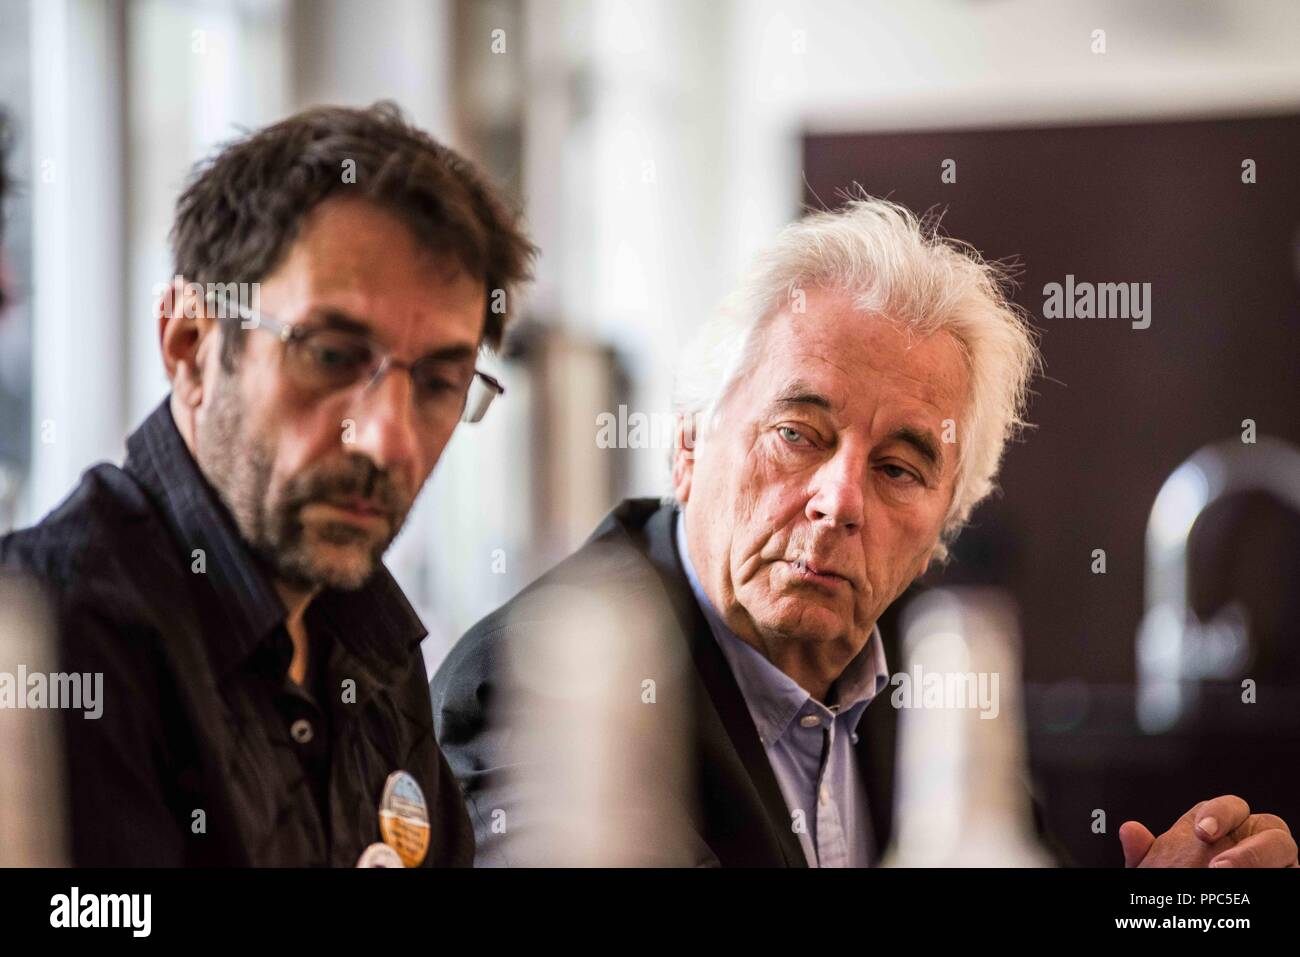 Munich, Bavaria, Germany. 25th Sep, 2018. Thomas Lechner and Hartmut Waechtler. Citing the increasing politics of fear and attacks on civil and human rights, some 55 civil groups, organizations, and political parties have organized a follow up to the successful Munich NoPAG demonstration against the PAG Police Assignment Laws. The groups state that the increasingly exclusionary and populistic politics of the CSU and the AfD, along with the Polizeiaufgabengesetze (PAG Police Assignment Laws) are turning citizens into objects, which is a prerequisite for authoritarianism. In attendance w - Stock Image